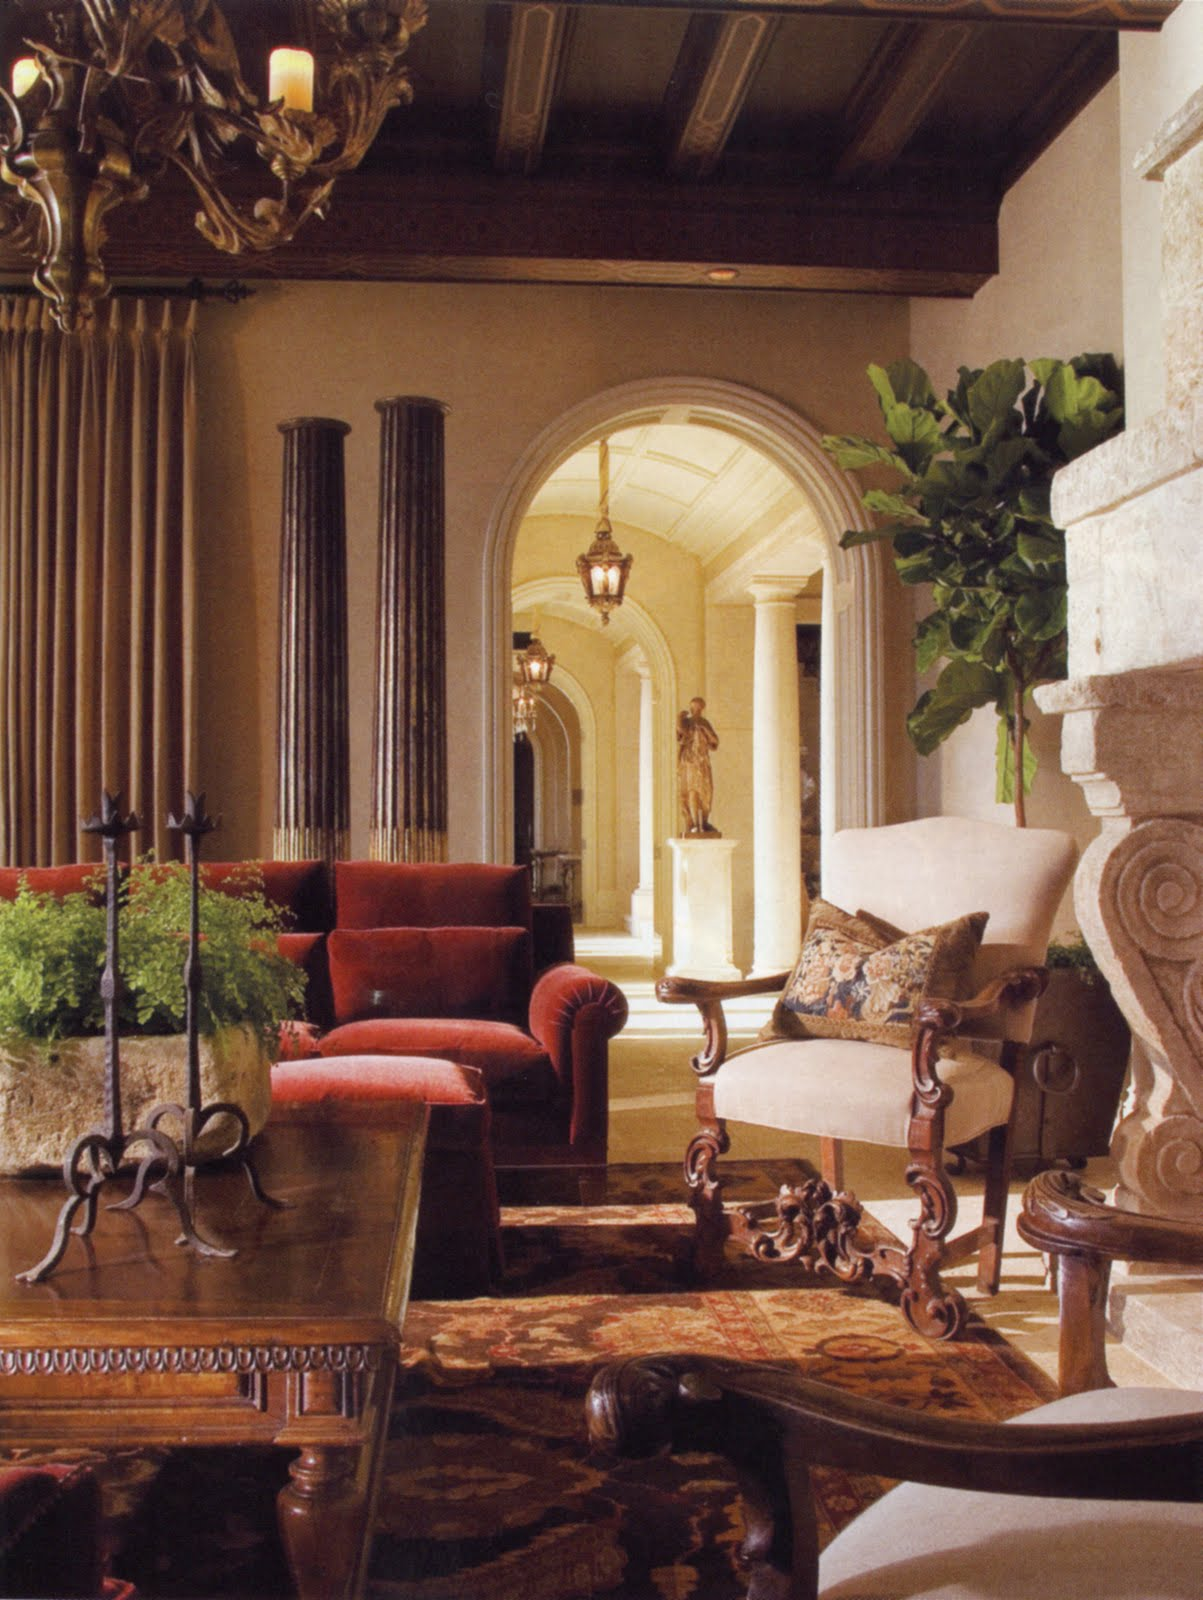 Architectural Digest: Phoenician Stone, Since~1943~: As Seen In Architectural Digest